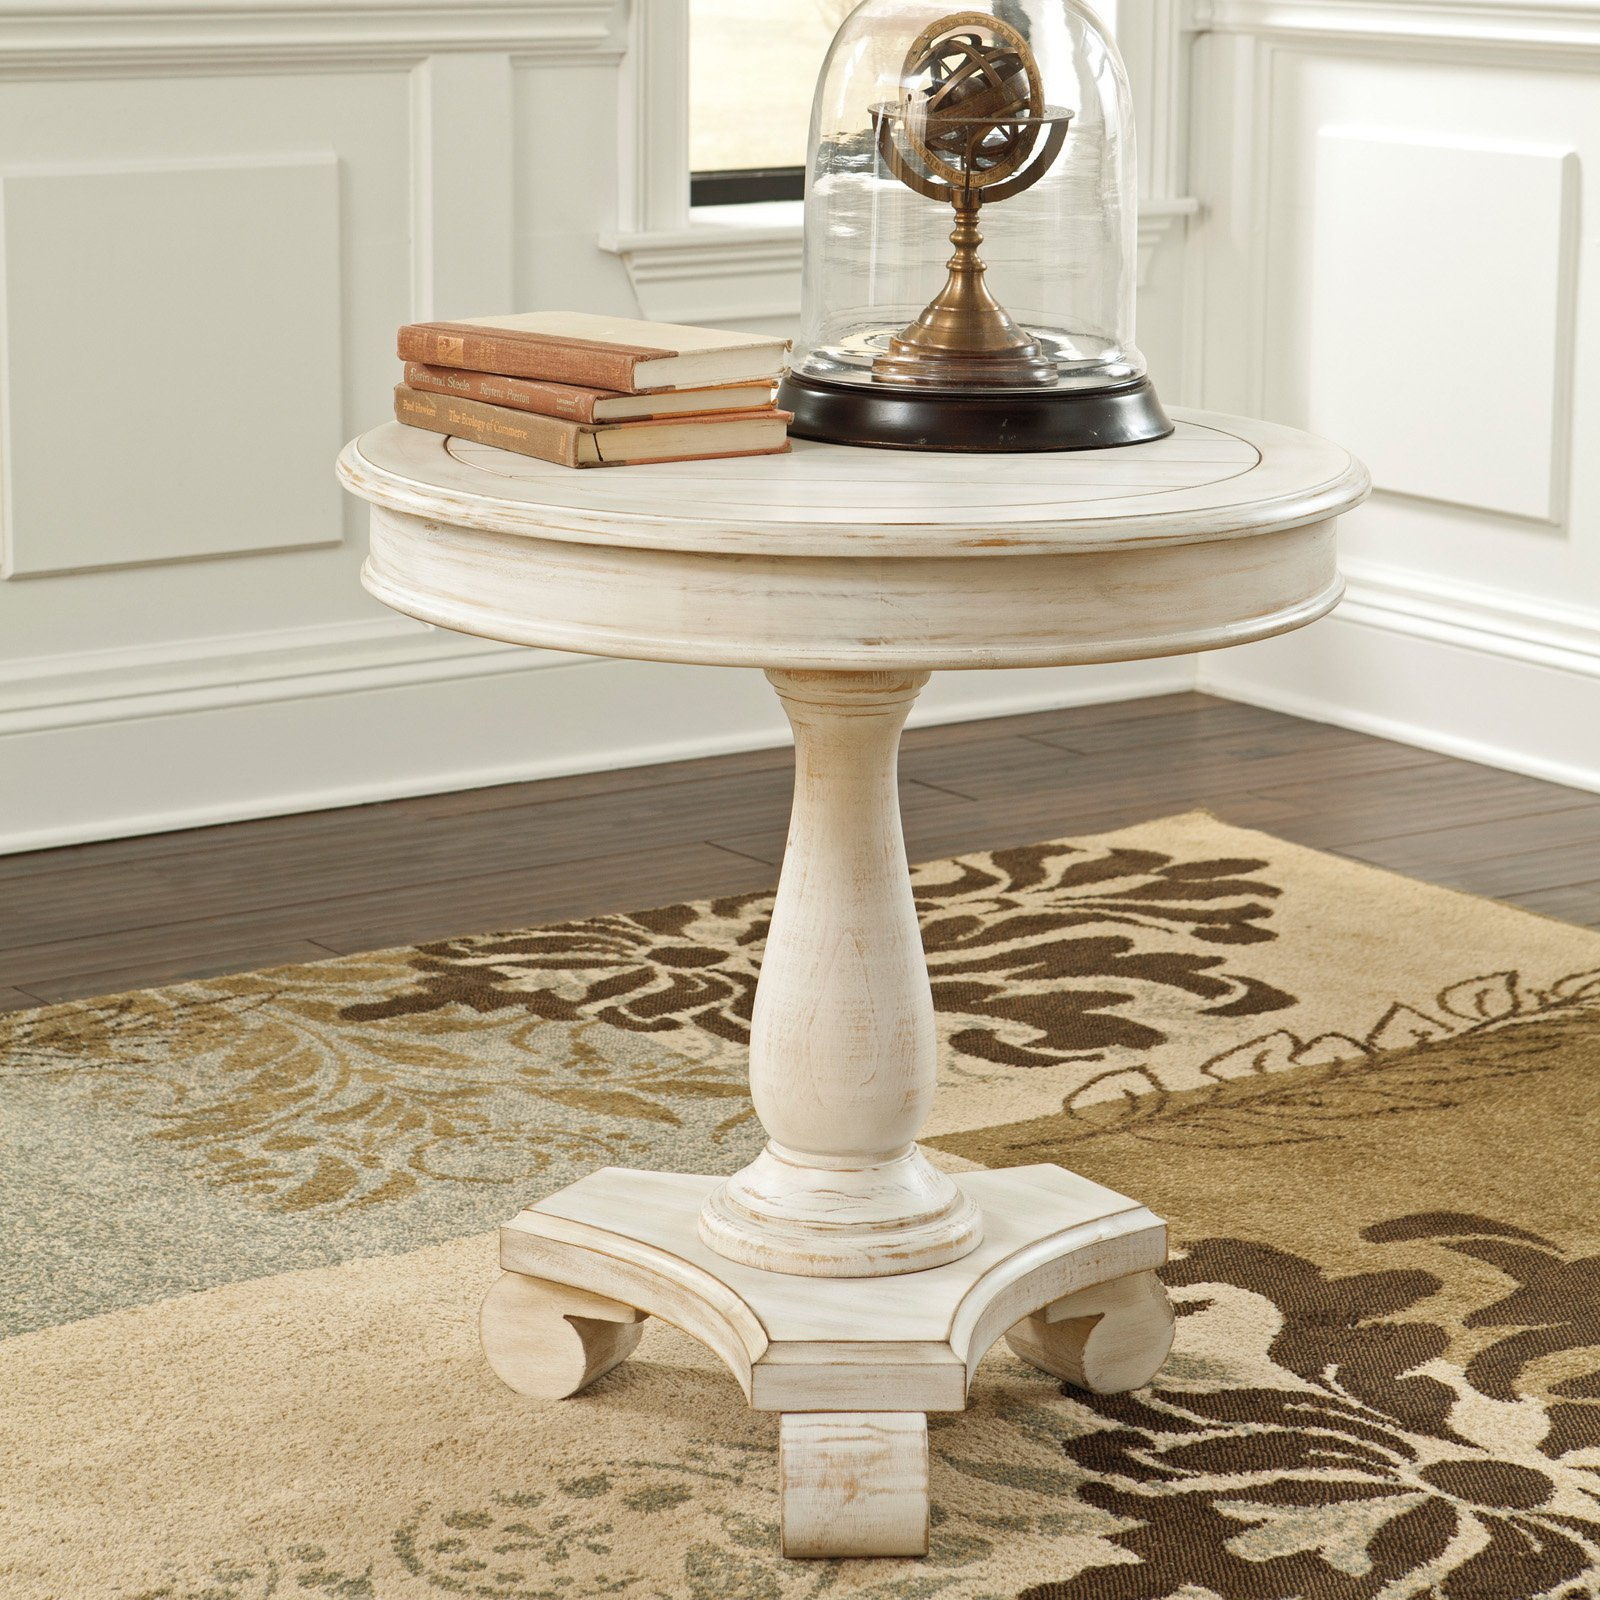 signature design ashley cottage accents white round accent table antique pedestal lift top ikea gray end stacking tables threshold bars for laminate flooring west elm apothecary